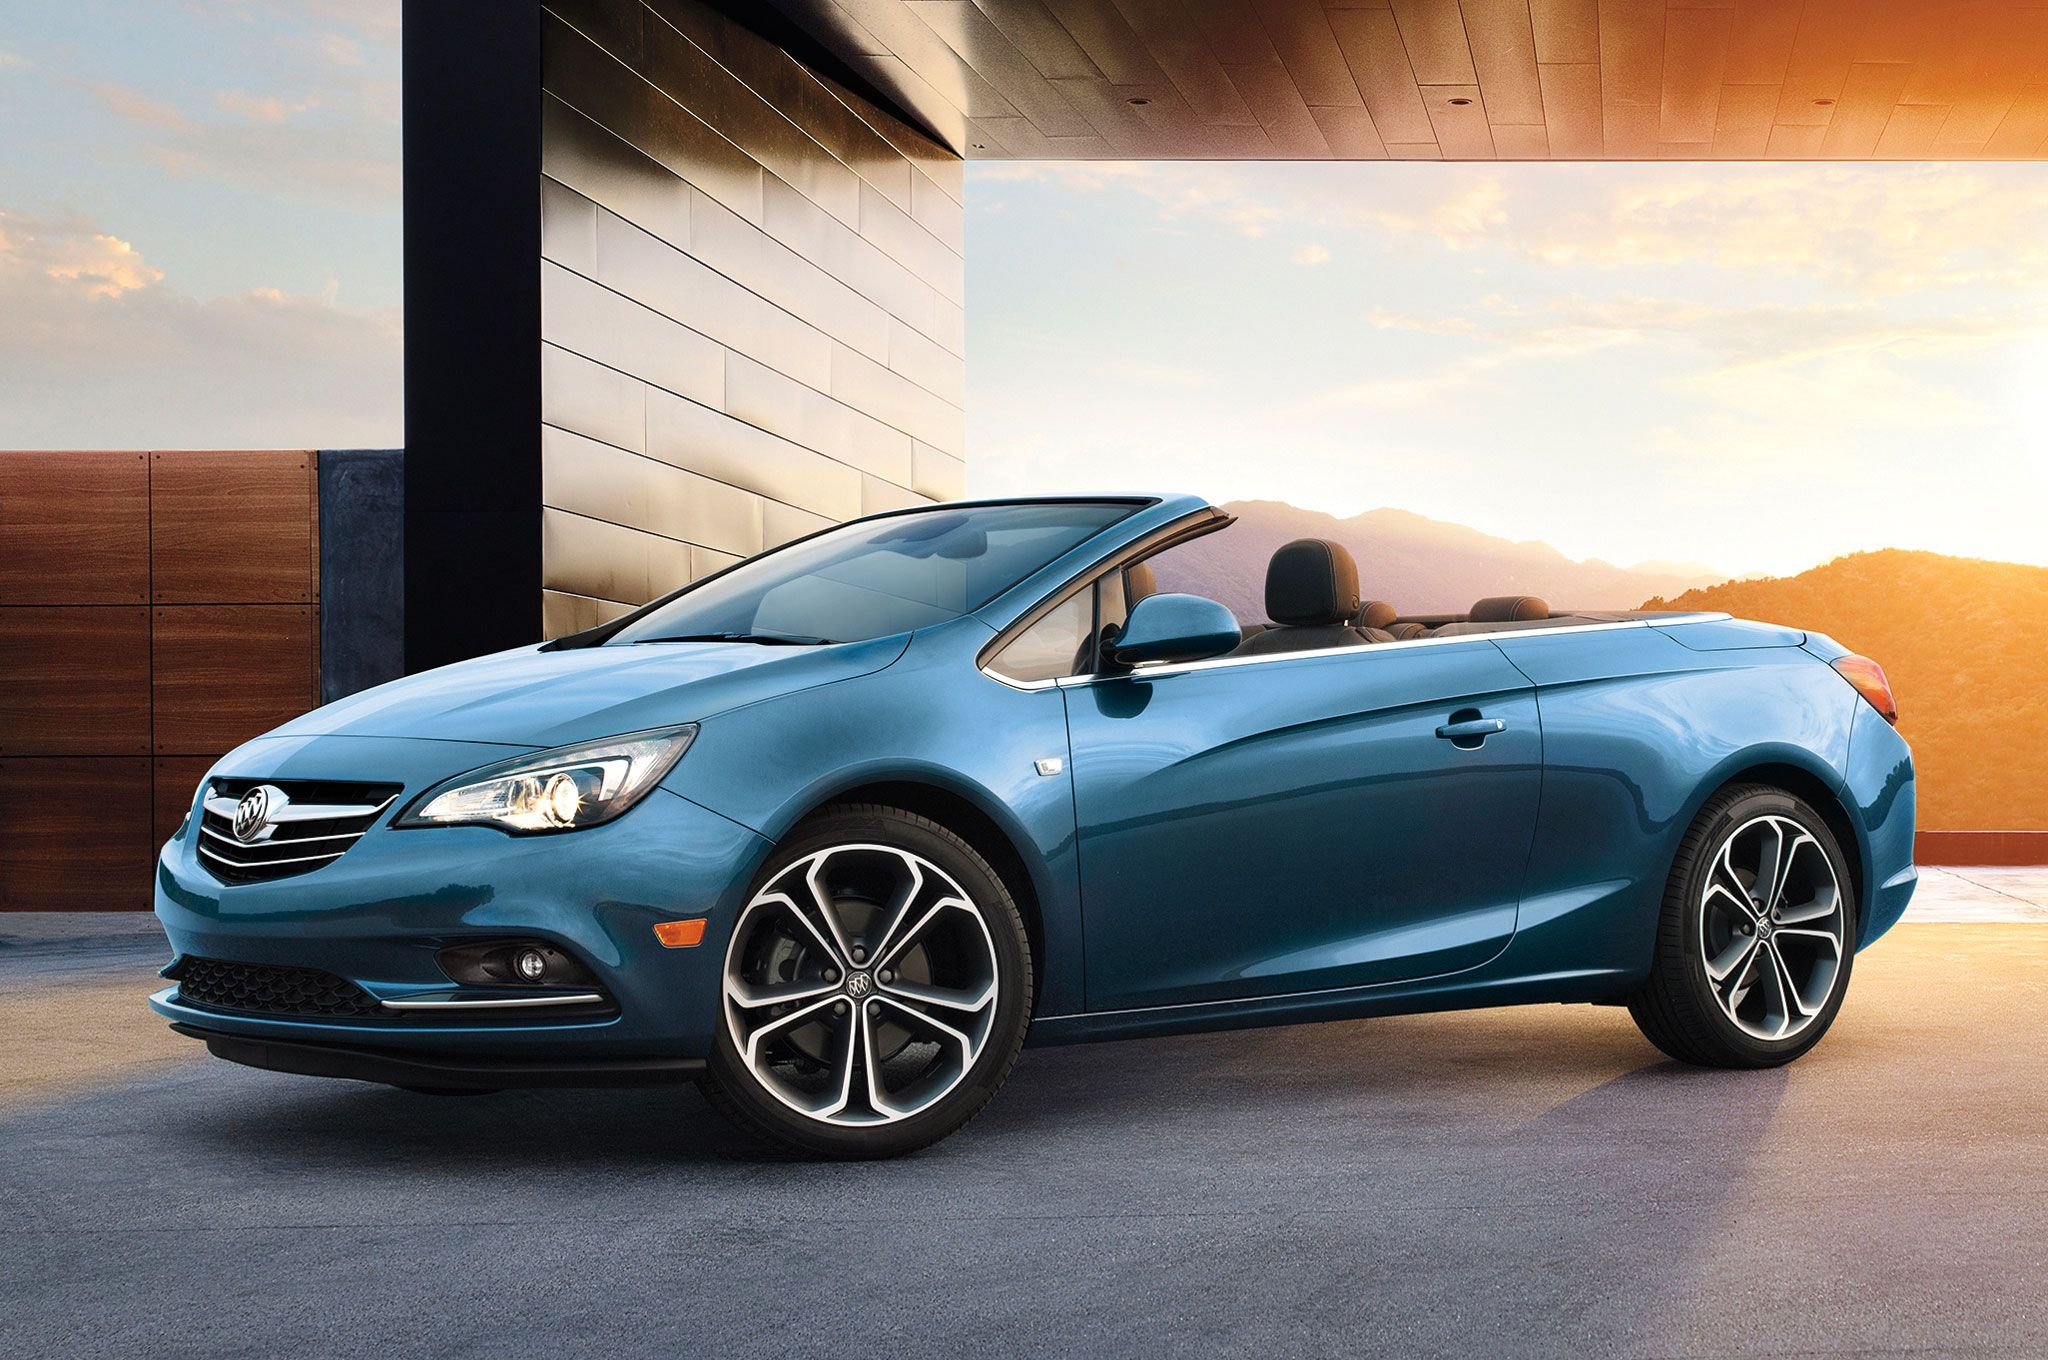 The Affordable Easy To Drive Convertible Is As American As Apple Pie And Um Opel The Buick Cascada Already Sold In Europe Fi Buick Cascada Buick New Cars